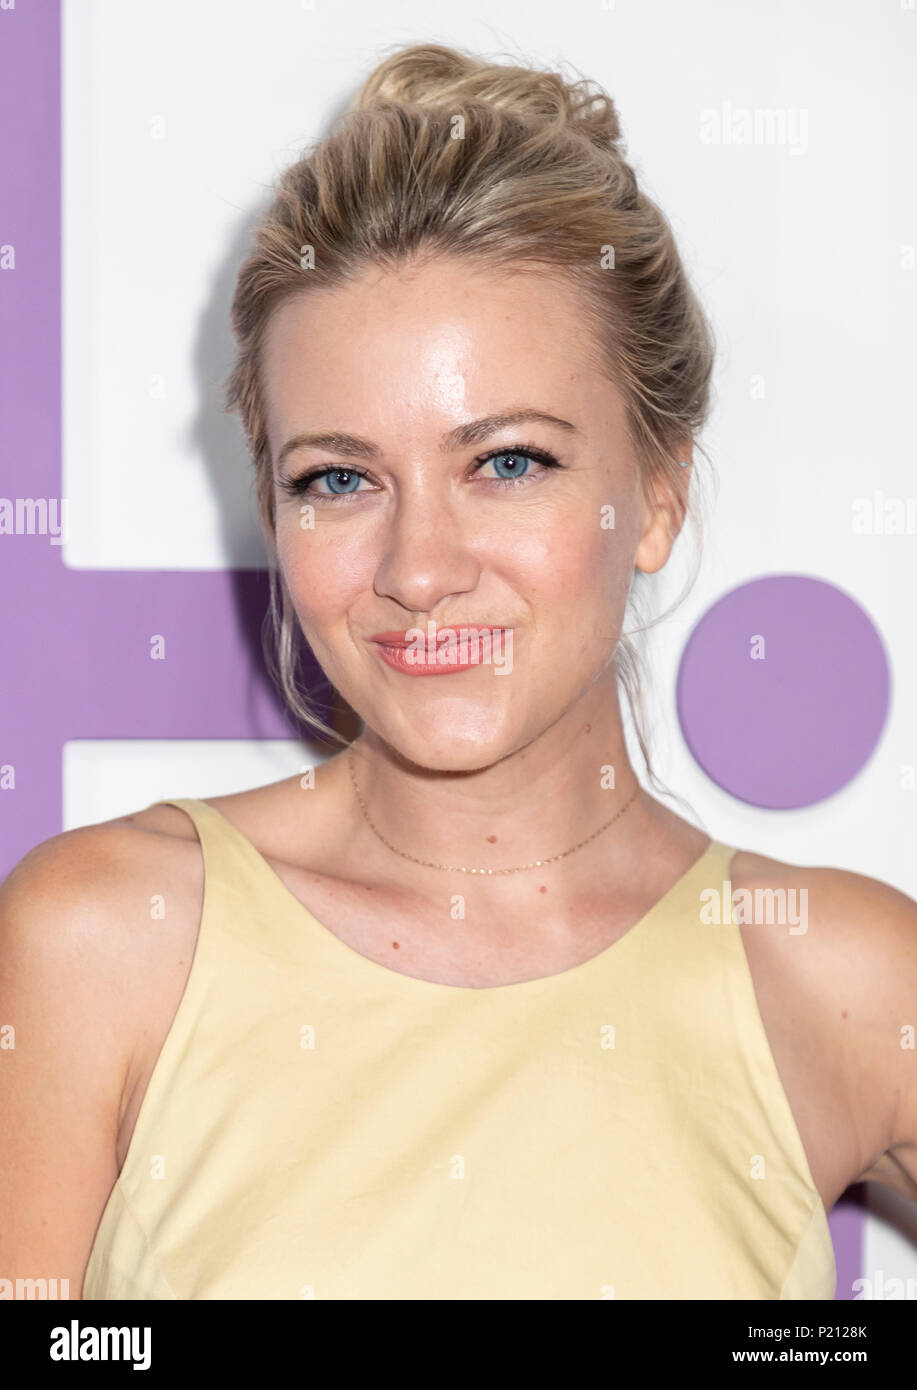 New York, NY, USA - June 12, 2018: Meredith Hagner attends the New York special screening of the Netflix film 'Set It Up' at AMC Loews Lincoln Square Credit: Sam Aronov/Alamy Live News - Stock Image